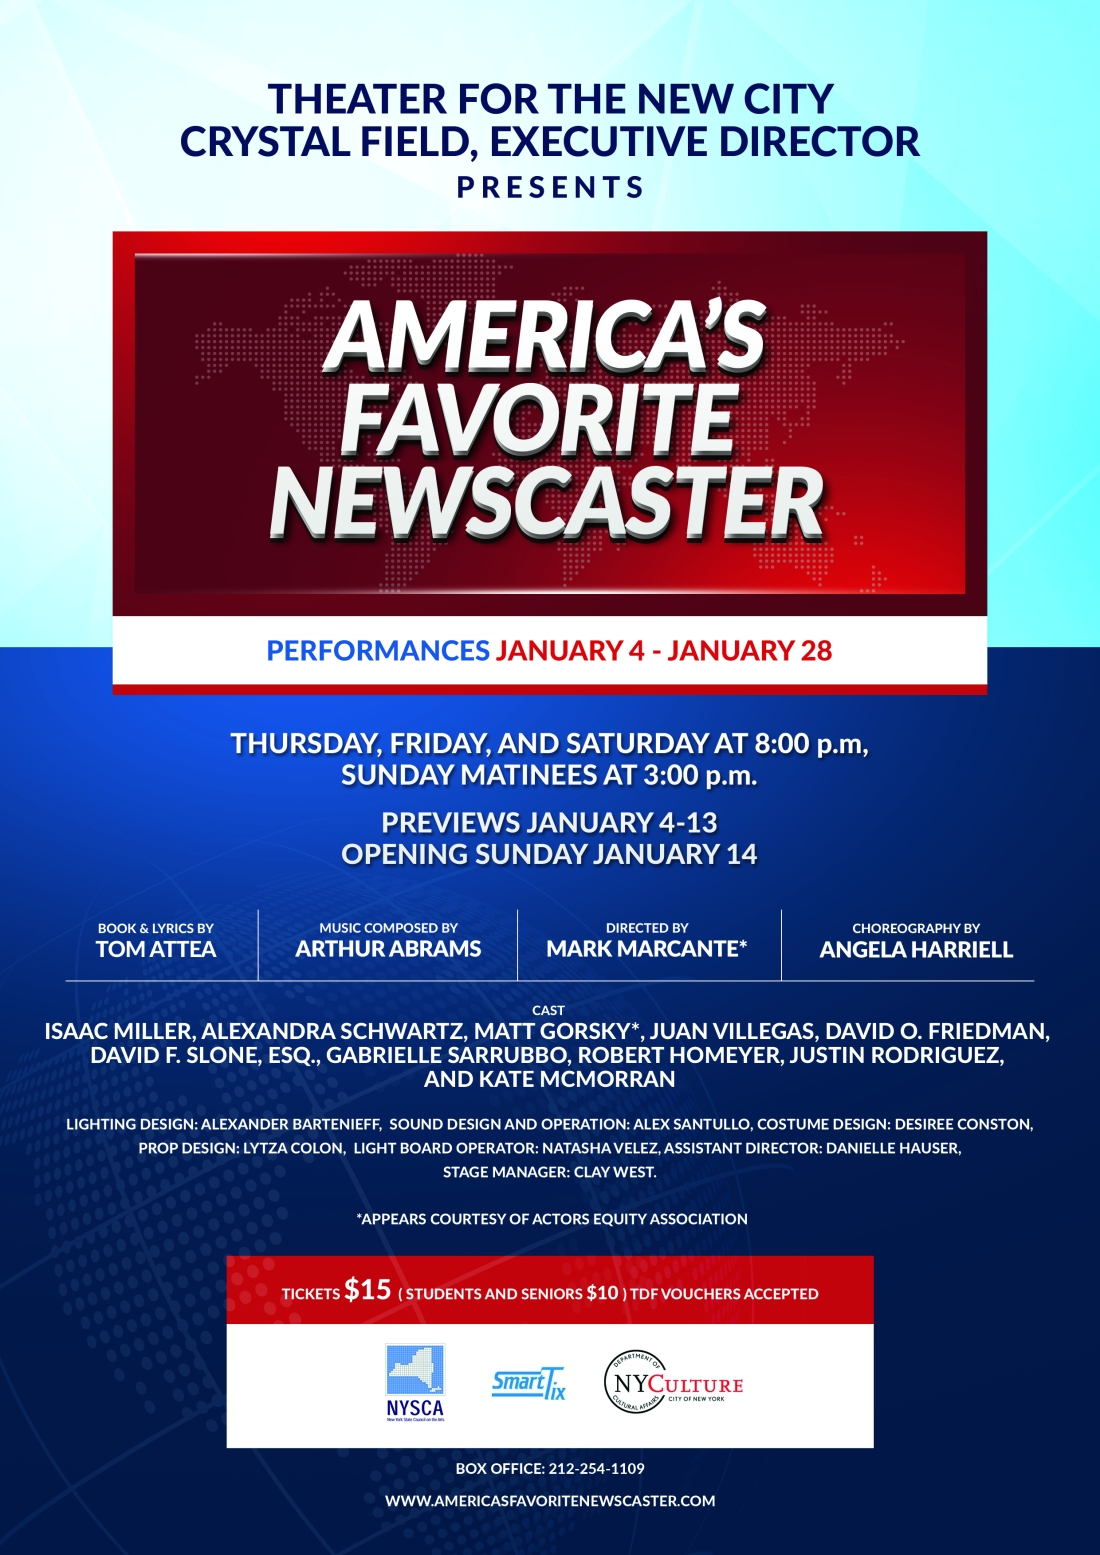 americas_favorite_newscaster_flyer_edit08